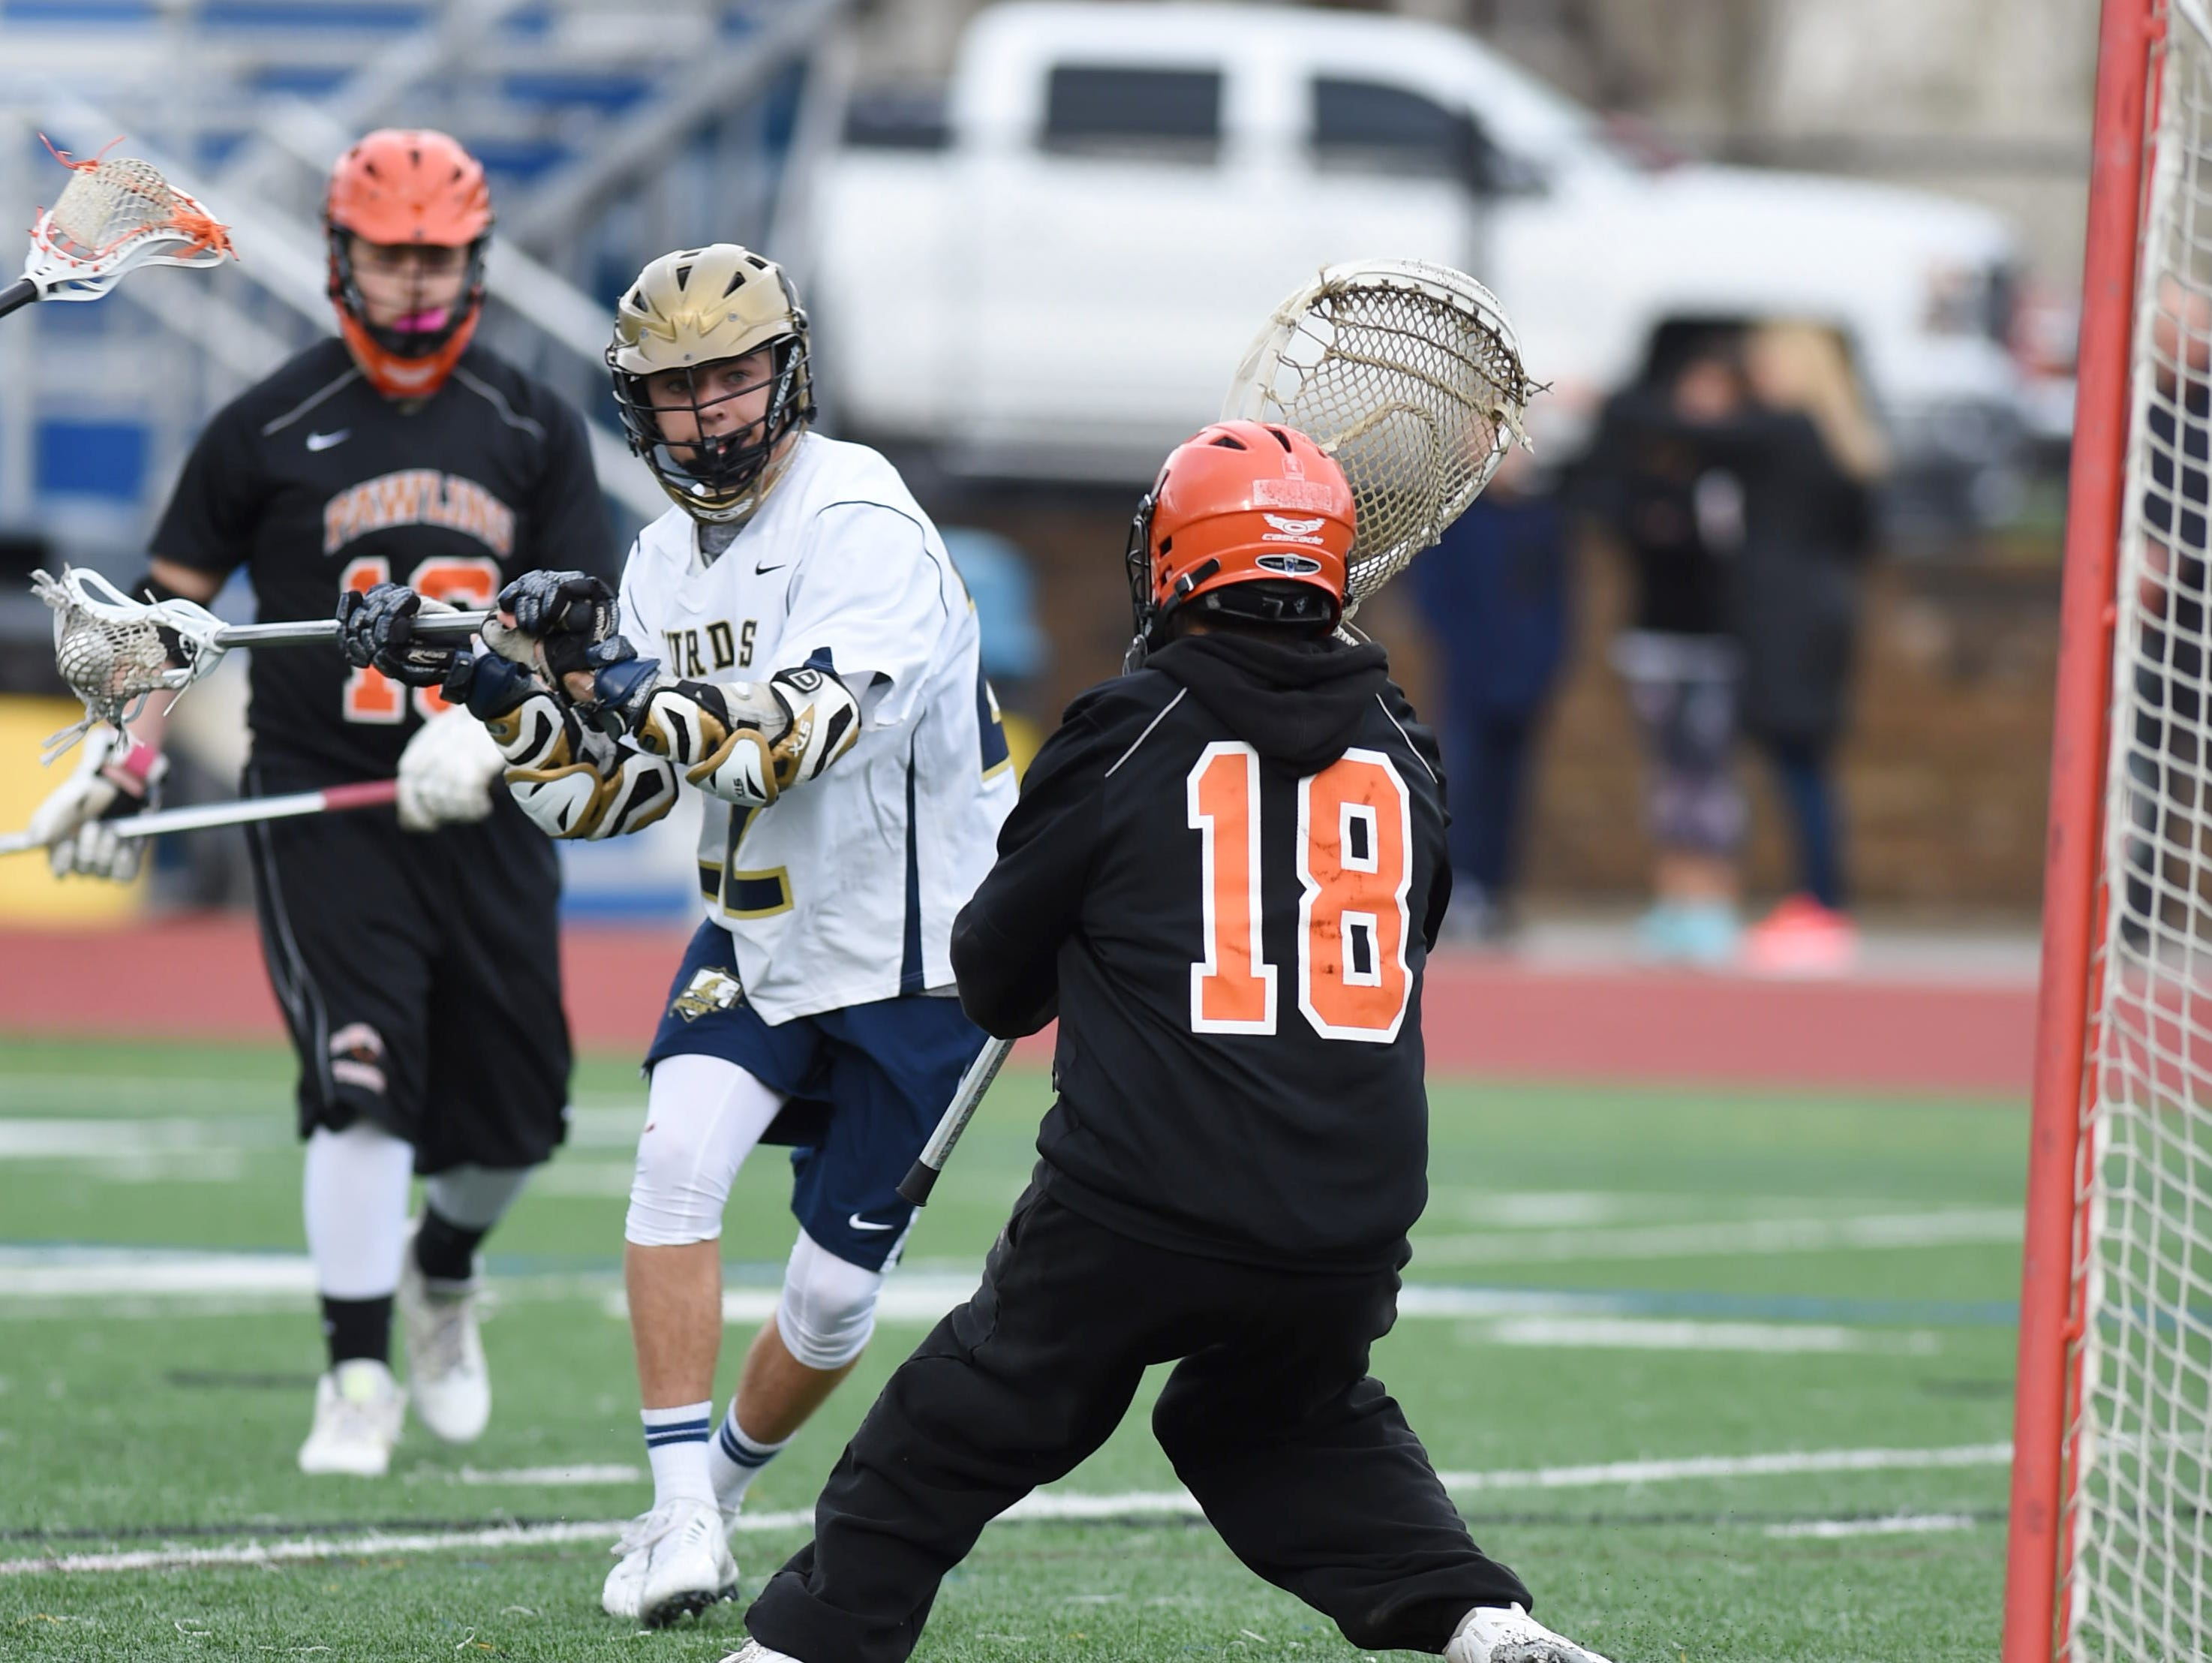 Lourdes' Dillon Rispoli winds up for a shot on Pawling's goalie, Sean Dazi during Thursday's game at Lourdes.